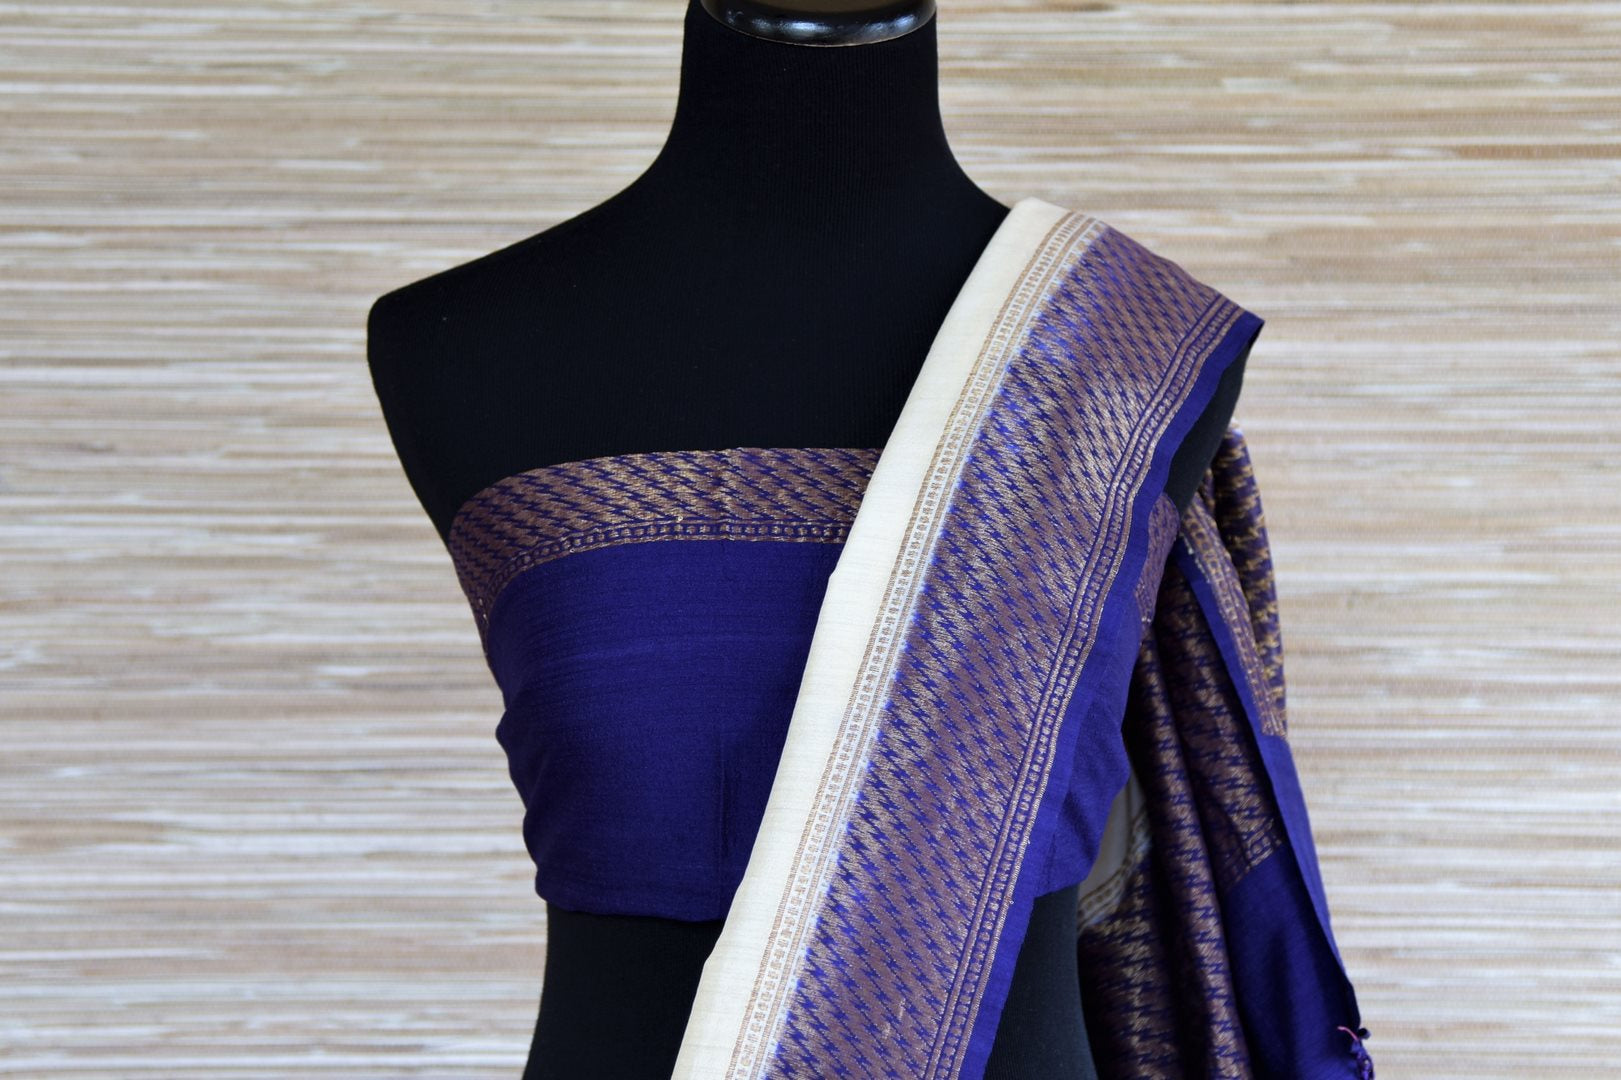 Buy white and blue muga Banarasi saree online in USA with floral zari work. Radiate traditional charm with beautiful Banarasi sarees from Pure Elegance Indian clothing store in USA. Choose from a variety of handwoven saris, Banarasi silk sarees, Banarasi georgette sarees, Banarasi tussar saris for special occasions.-blouse pallu